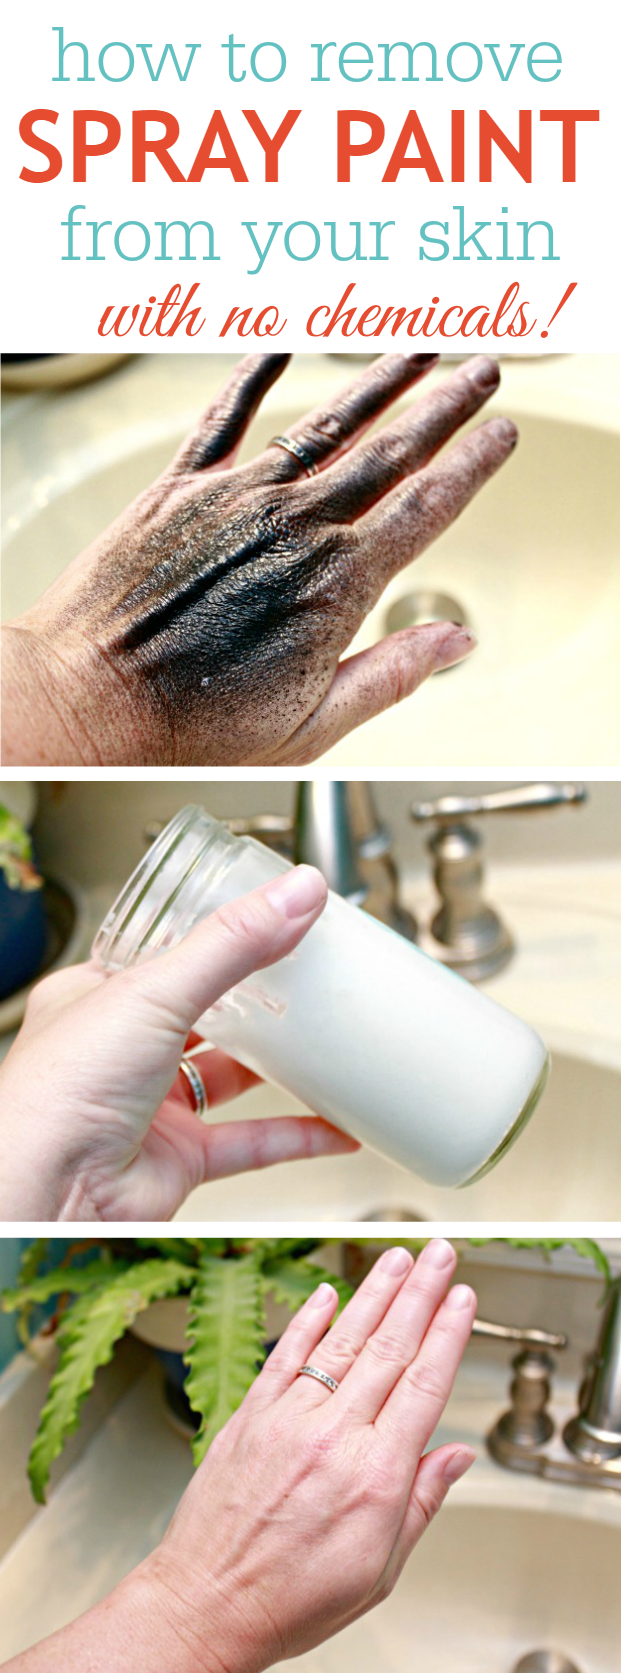 How To Remove Spray Paint From Your Skin No Chemicals Mom 4 Real